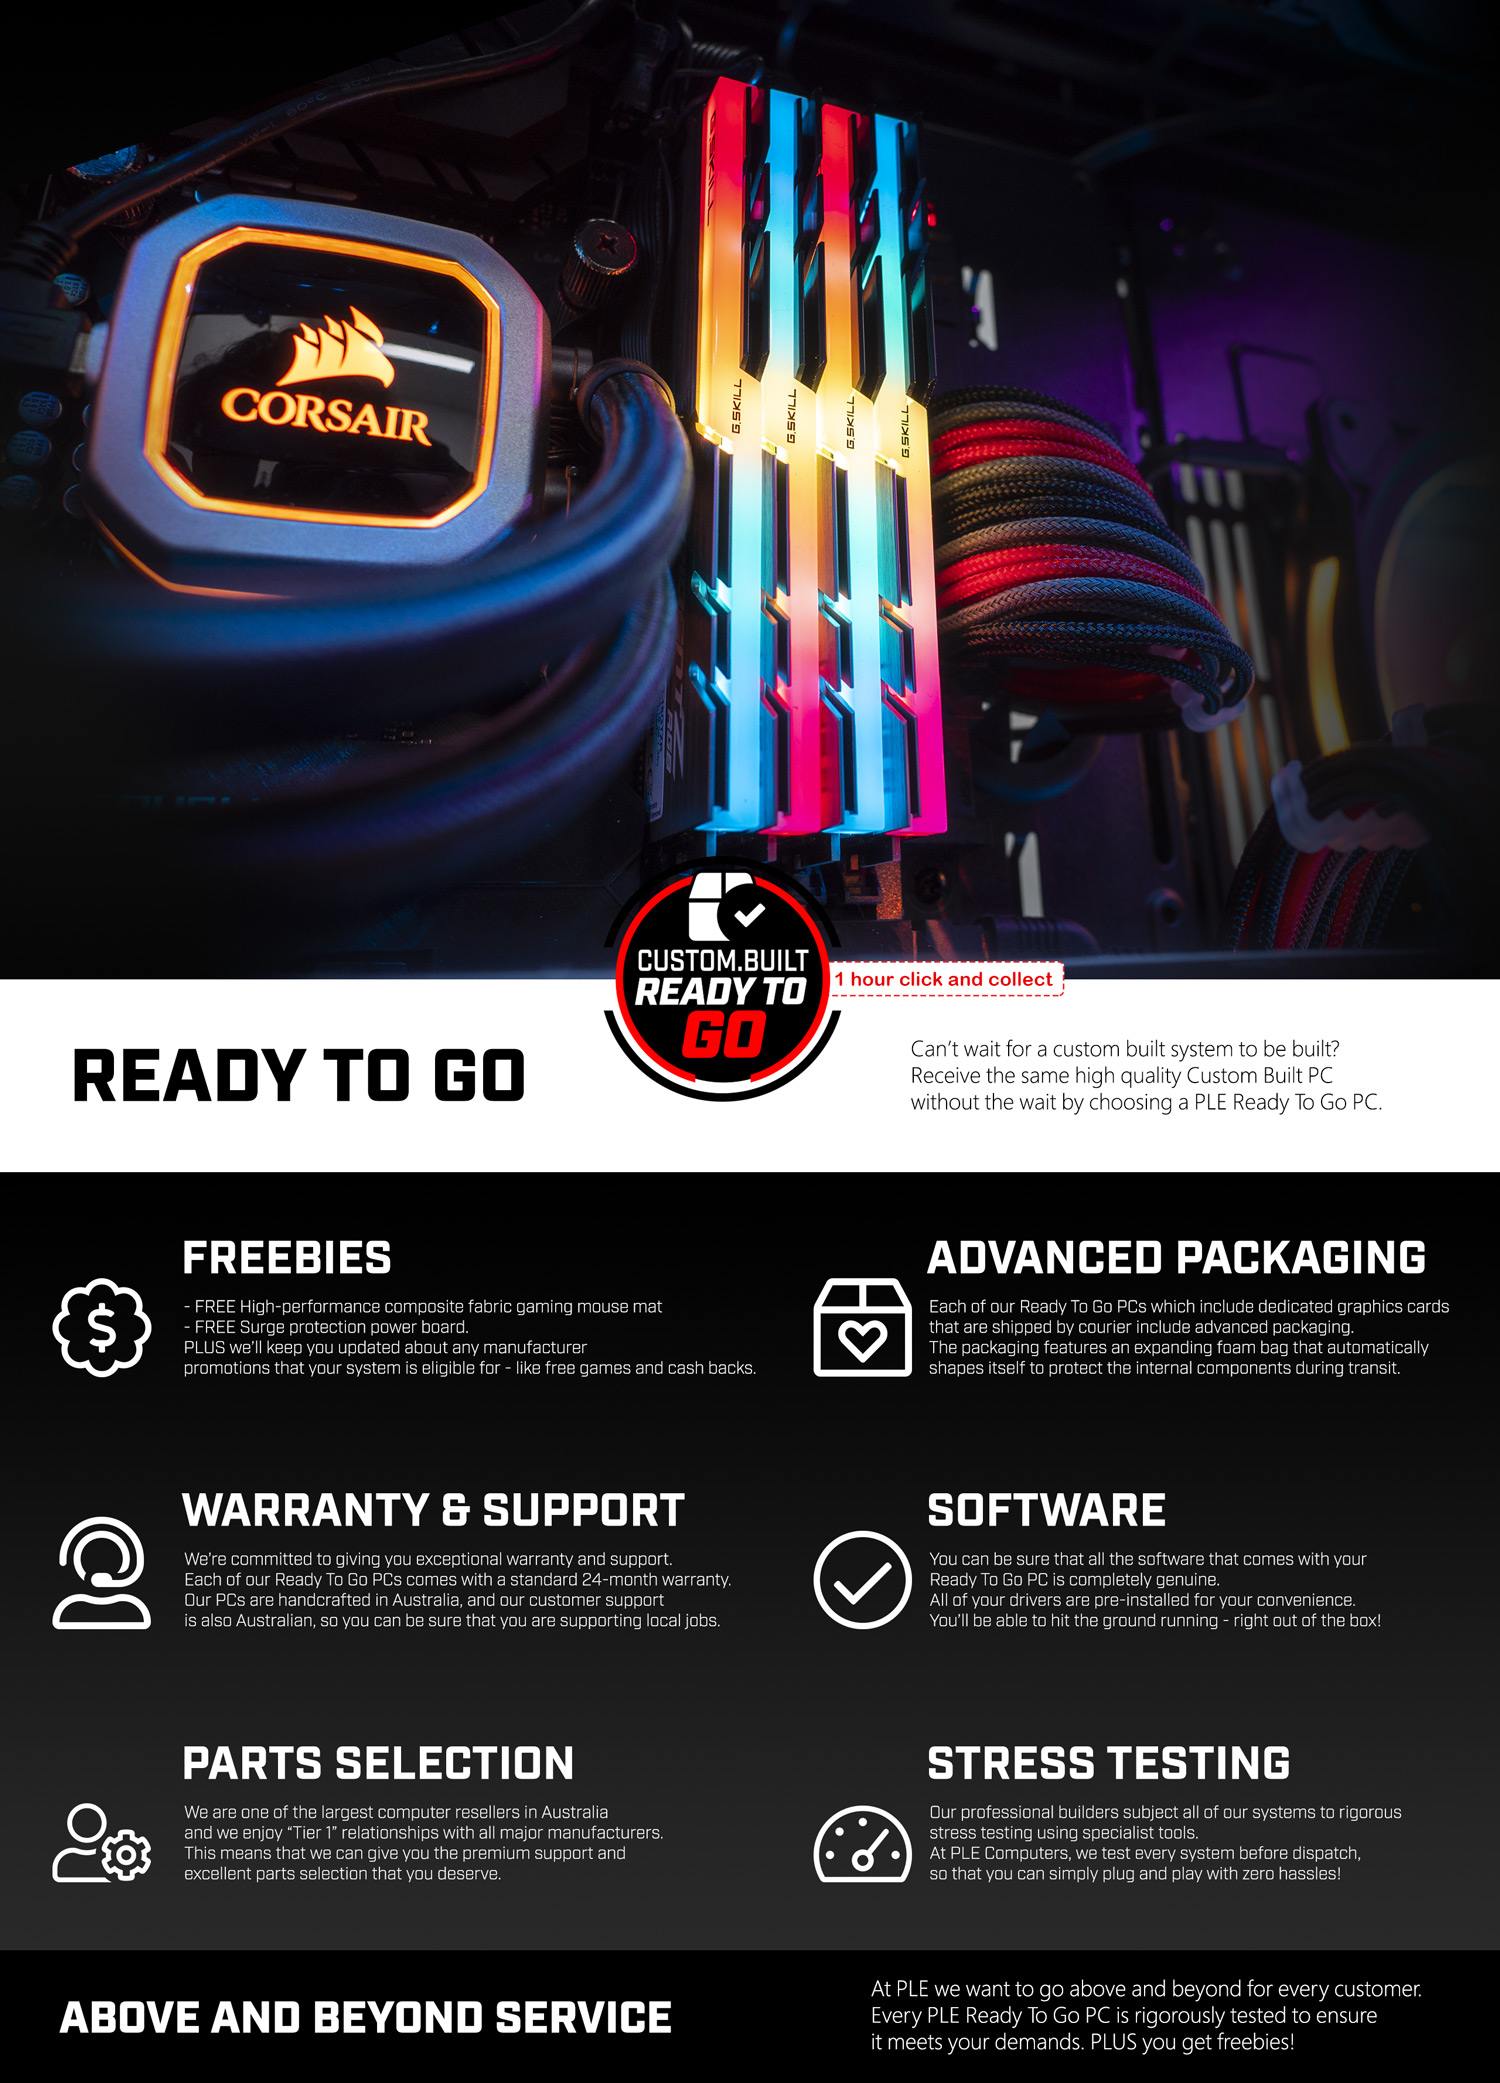 A large marketing image providing additional information about the product PLE Synergy Prebuilt PC - Additional alt info not provided